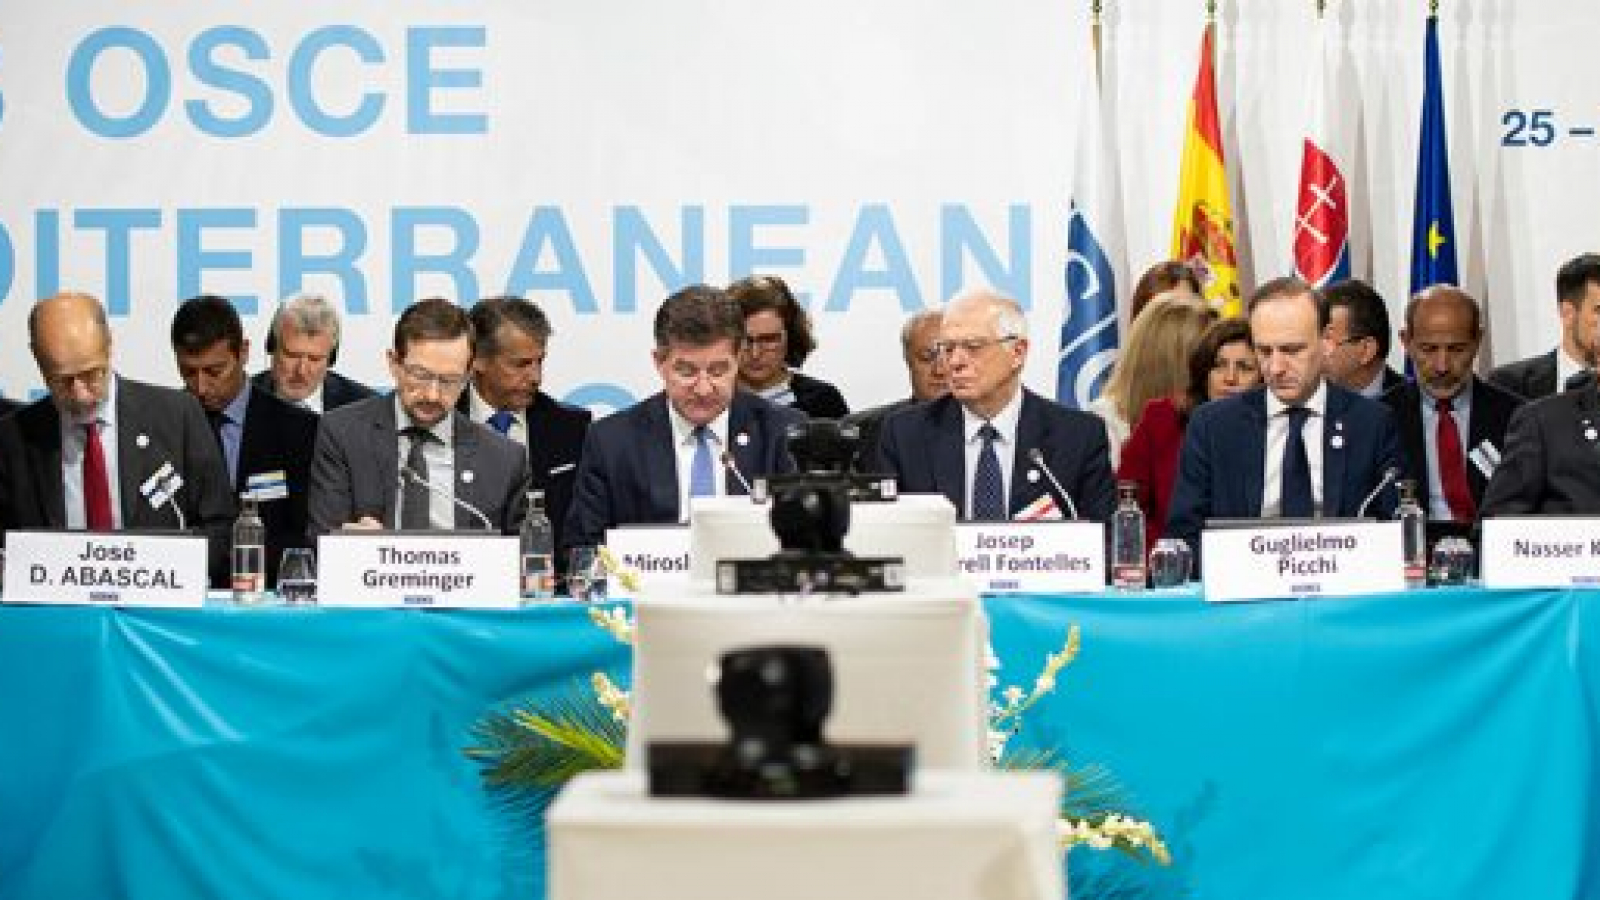 UfM Secretariat active in 2018 OSCE Mediterranean Conference to reinforce Euro-Mediterranean synergies and regional cooperation